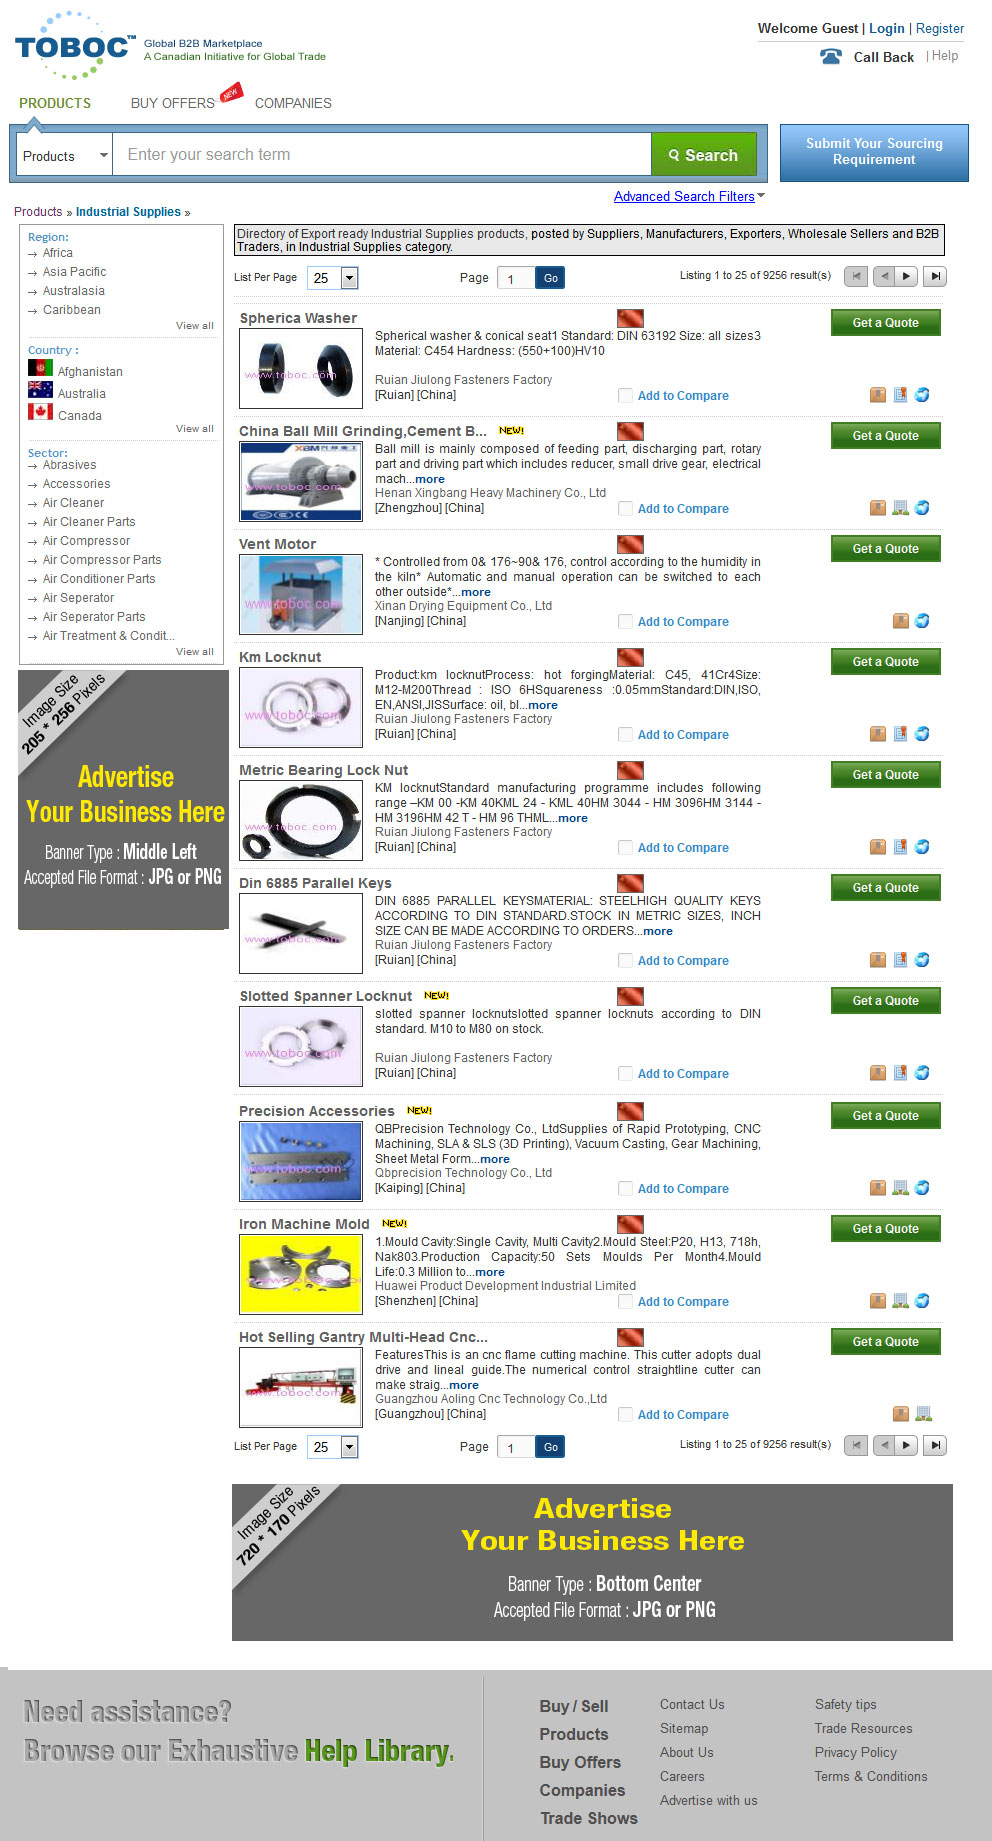 Product Search Results page